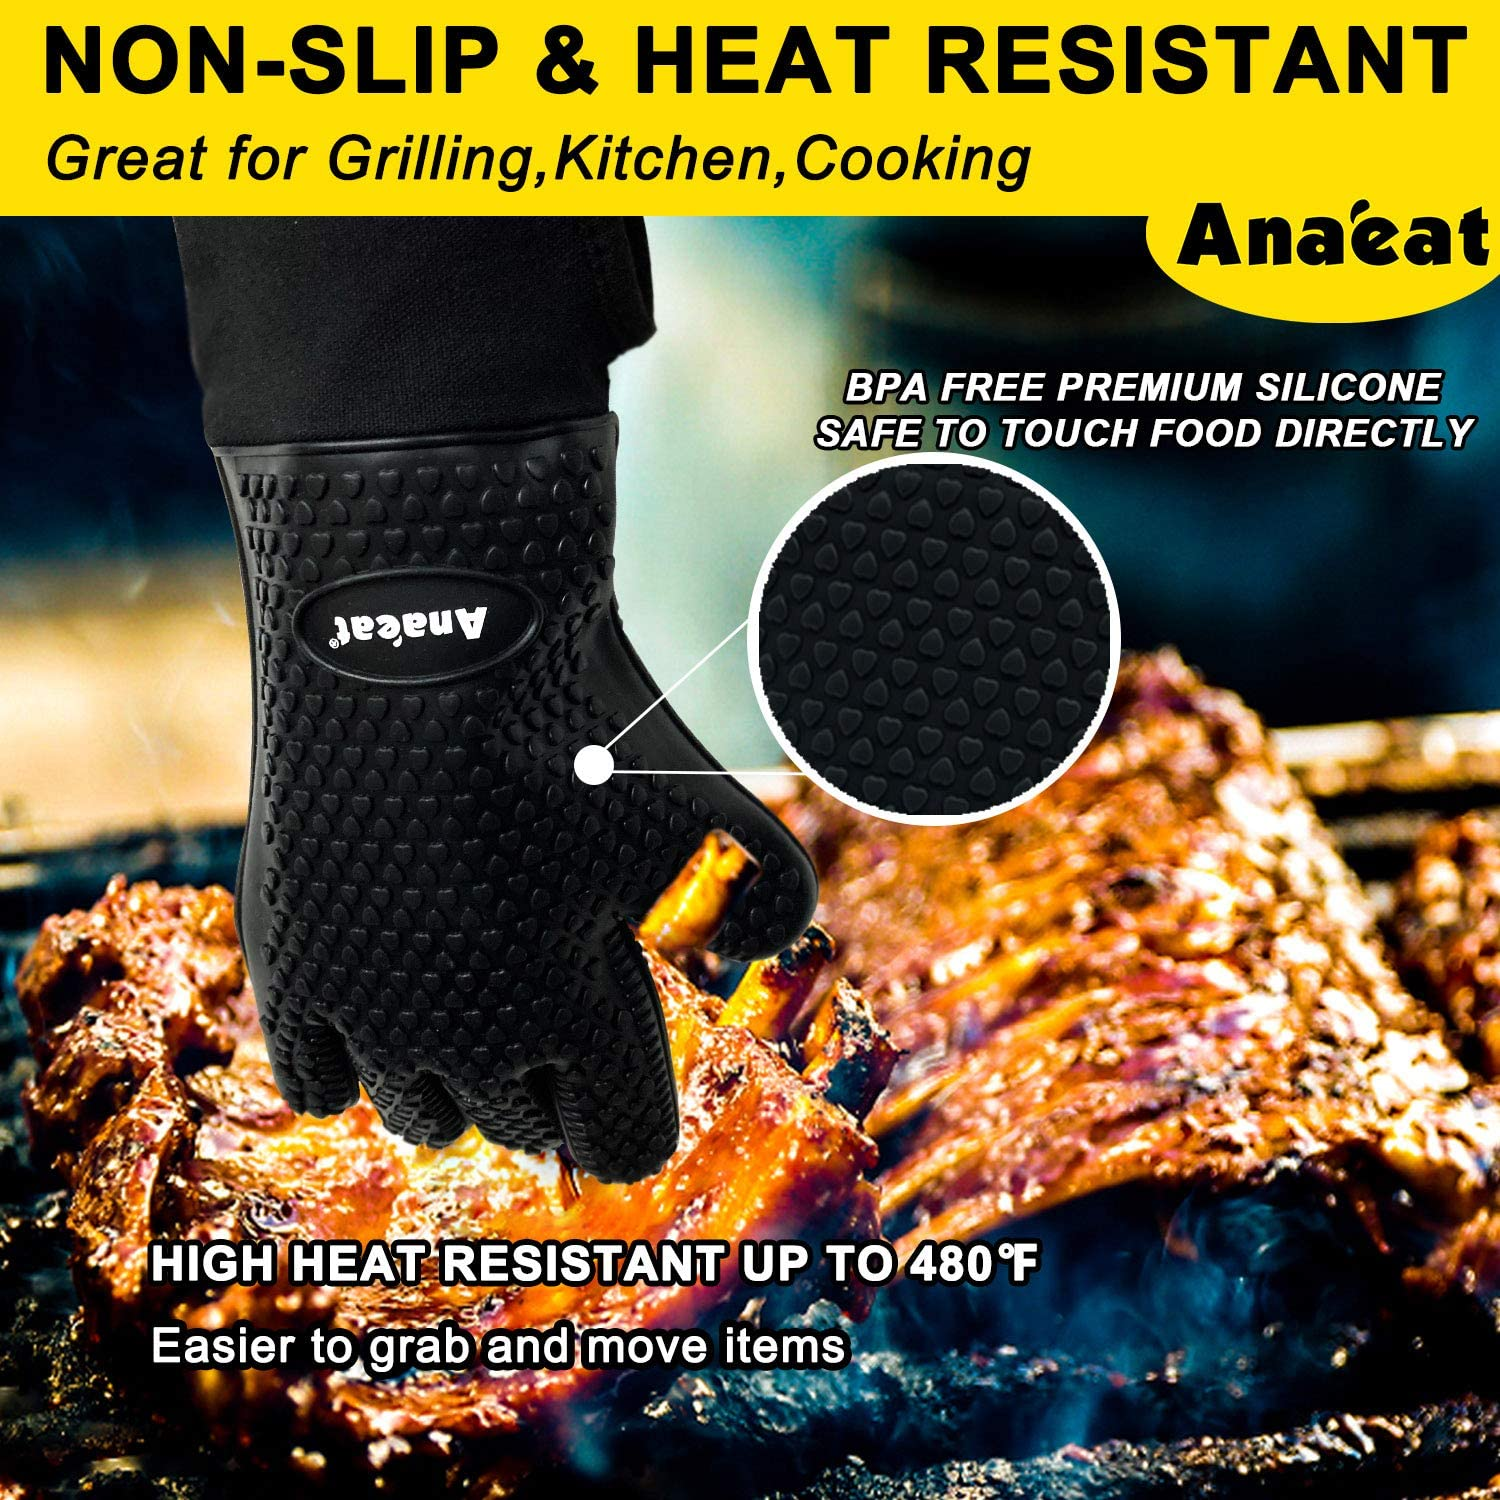 Silicone Oven Mitts Best Flexible Versatile Oven Gloves -100/% Cotton Lining Heat Resistant BBQ Grilling Gloves Waterproof Potholder for Cooking Black Baking-Thick Long Wrist Protection Barbecue